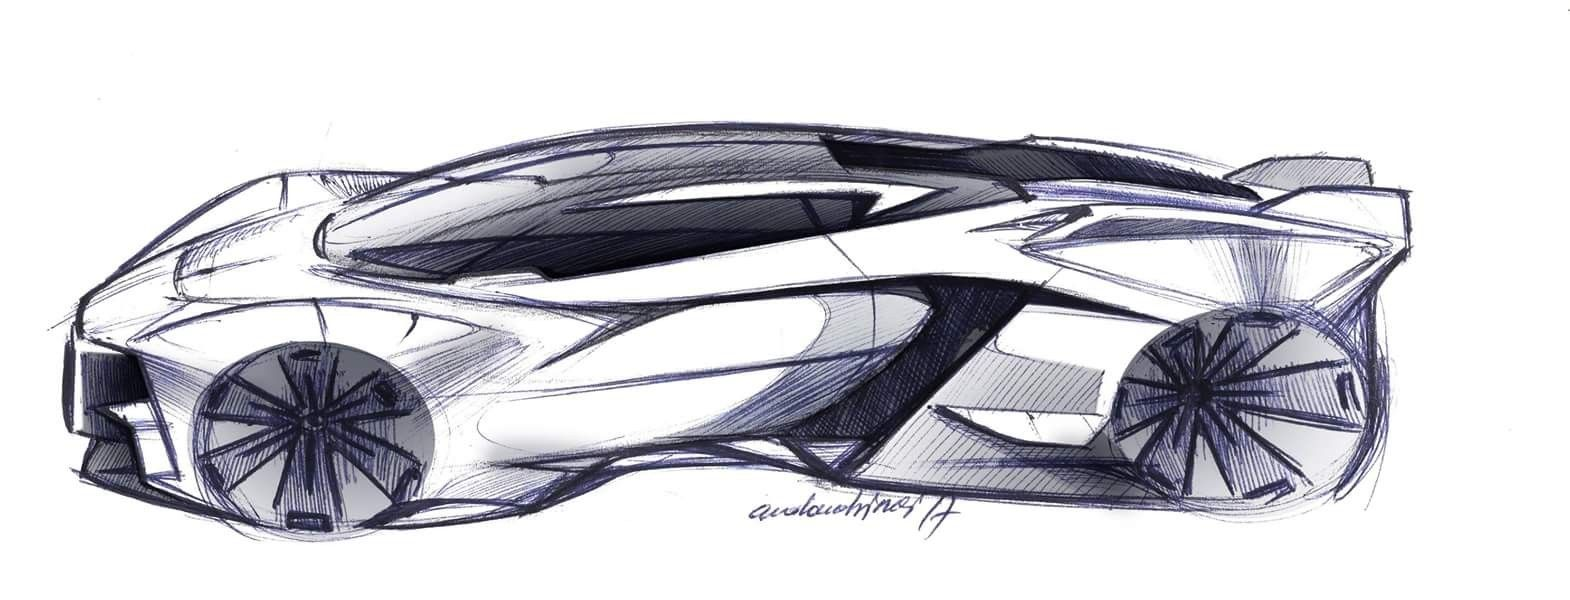 Futuristic Supercar Design Sketch Side View Industrial Design Digital Sketches Concept Car Renders Vehicle Concept Car Drawings Futuristic Cars Car Sketch